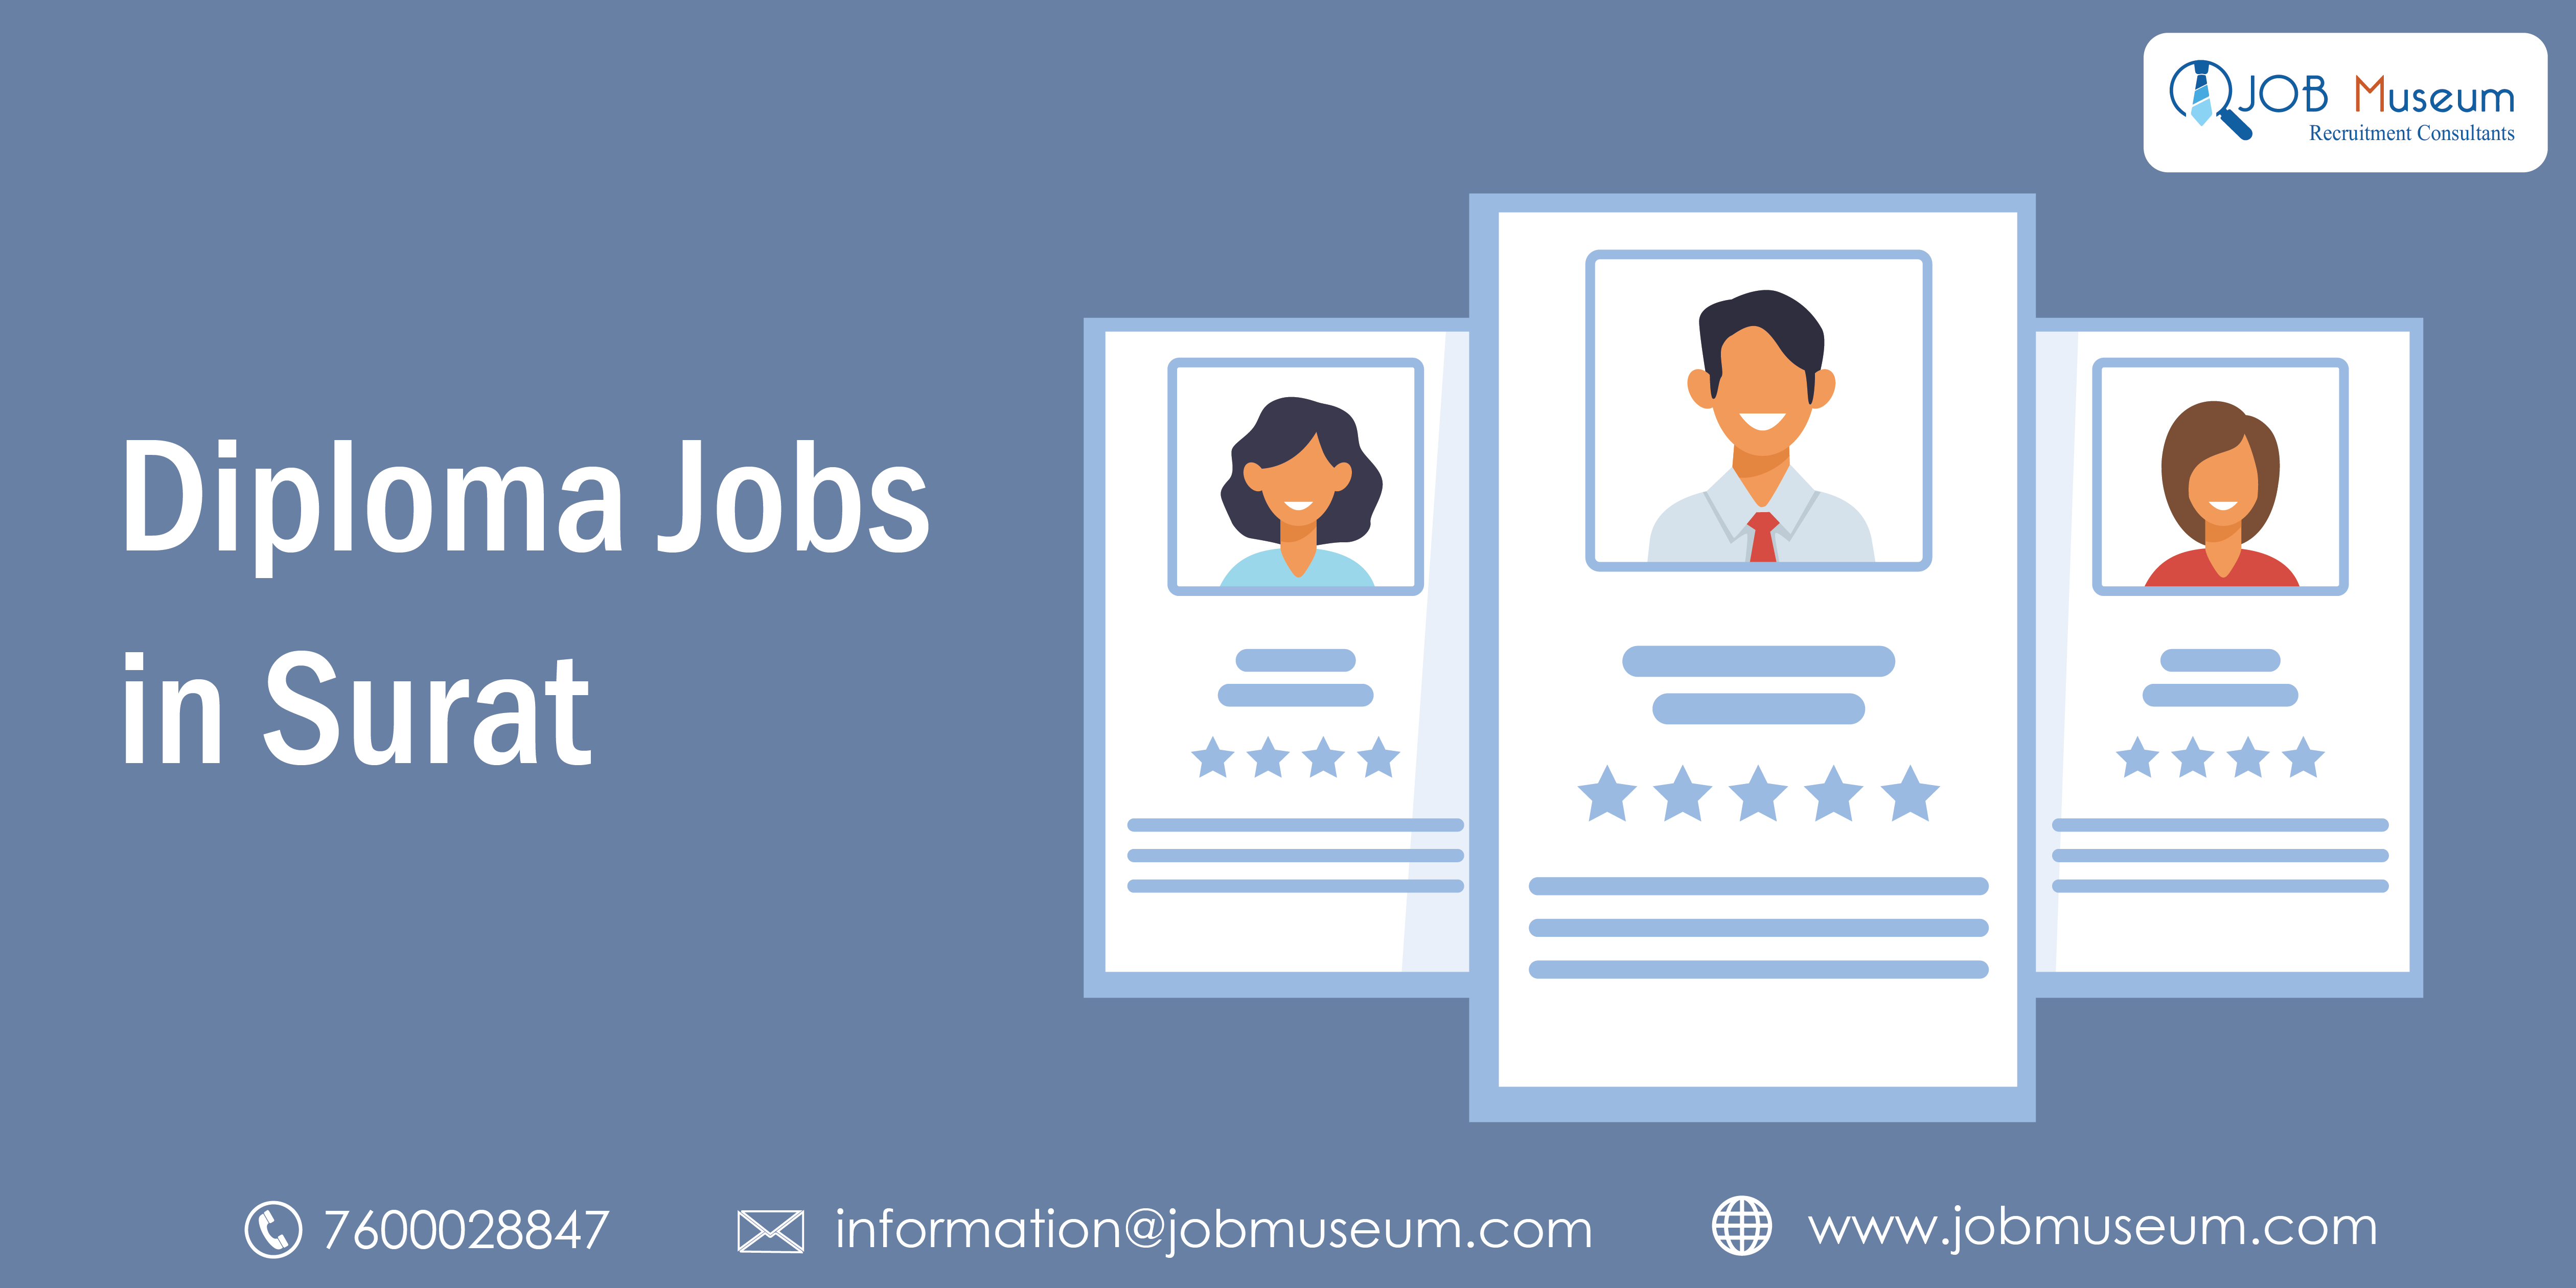 Diploma Jobs in Surat - Job Vacancy for Freshers and Experienced